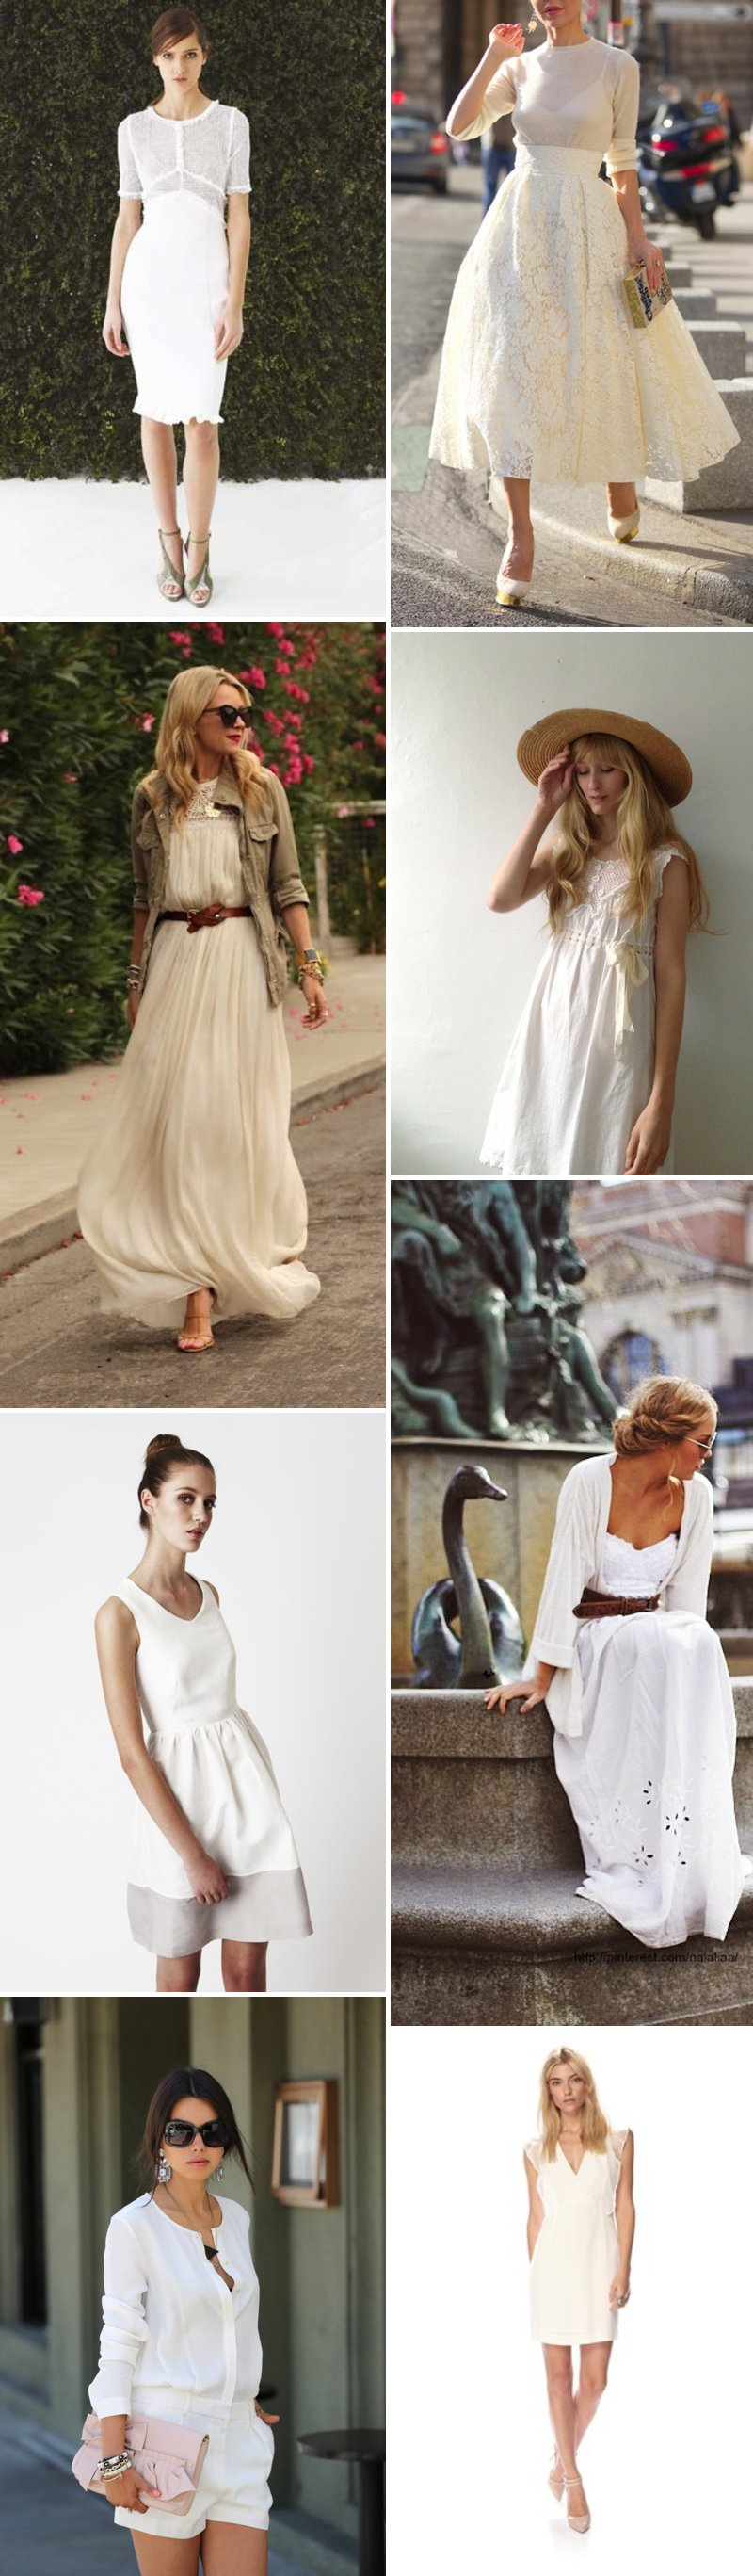 White Dresses Wedding Guests Sartorial Choices Inspiration